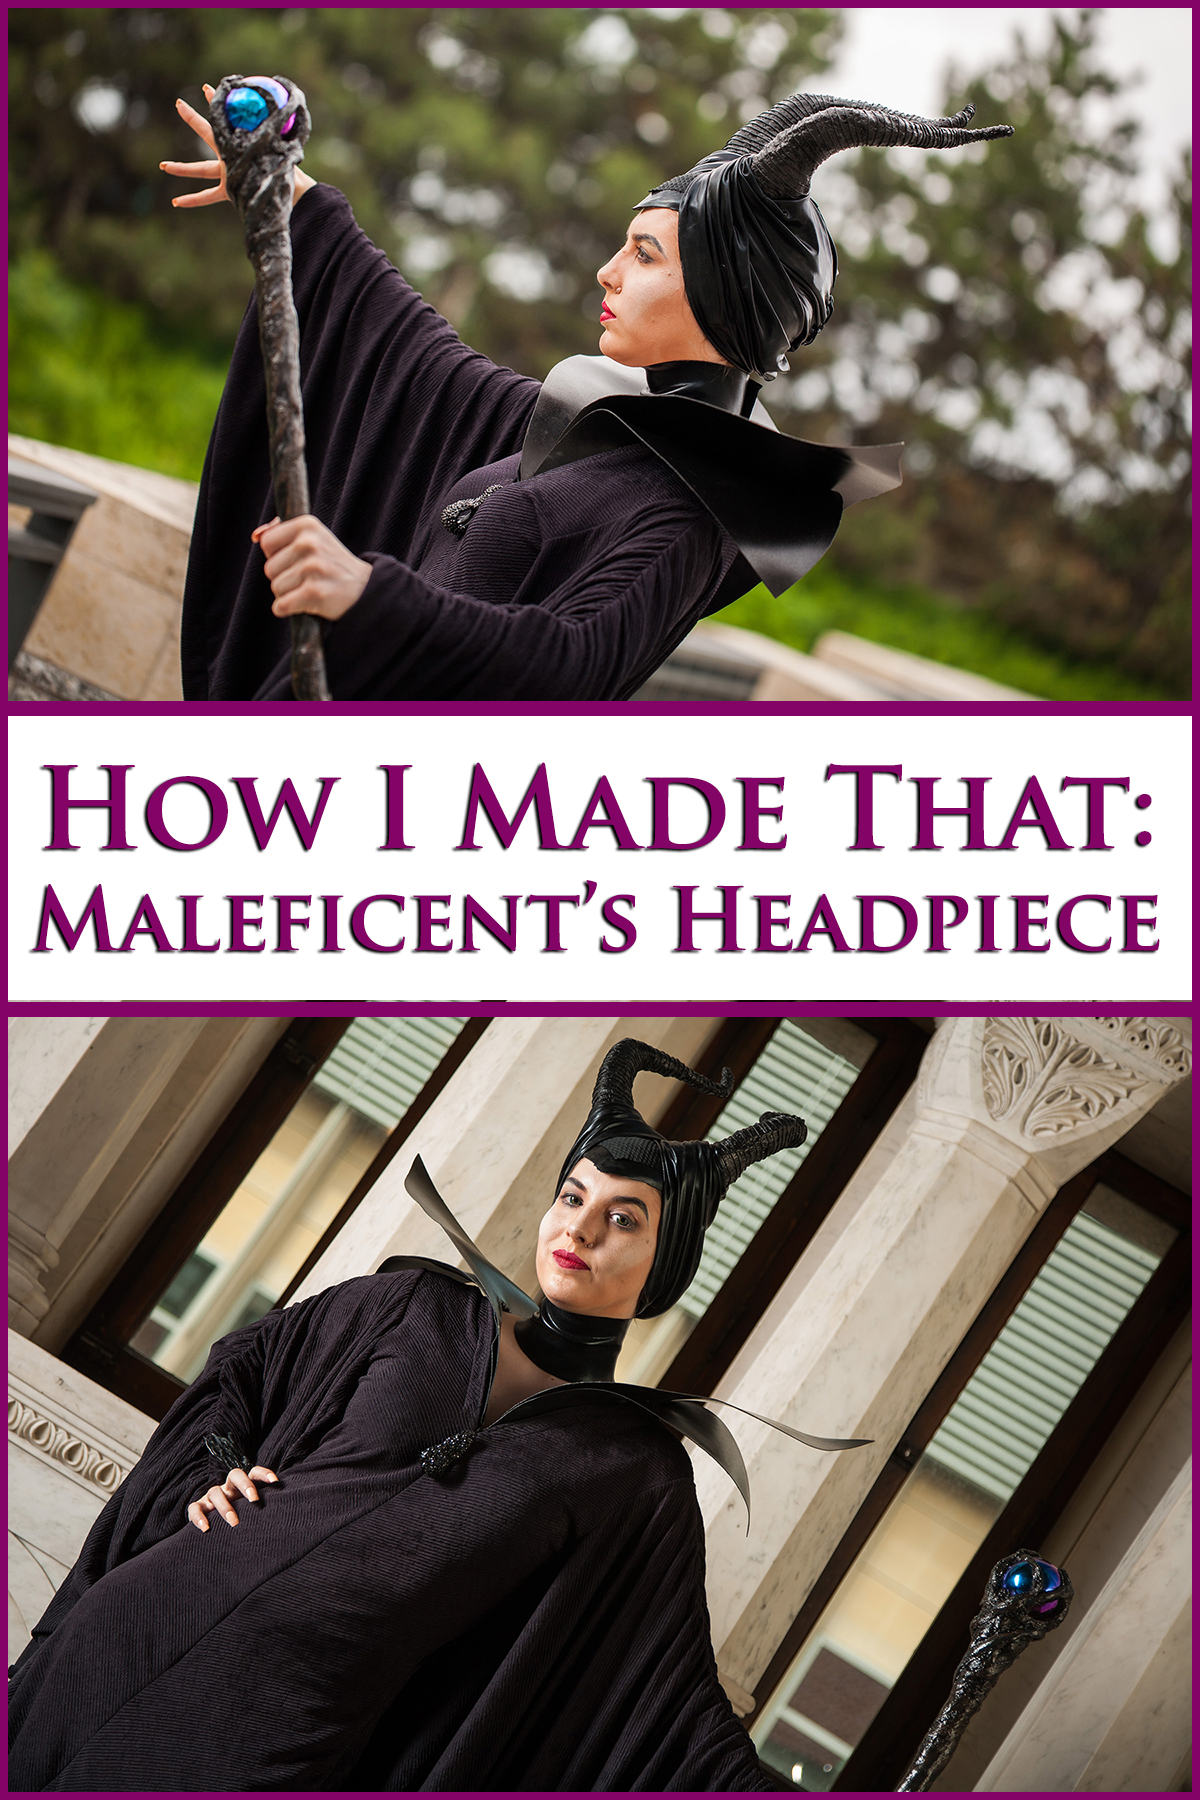 2 photos of a cosplayer wearing the Maleficent headpiece and horns. Red text overlay says How I Made that: Maleficent's Headpiece.